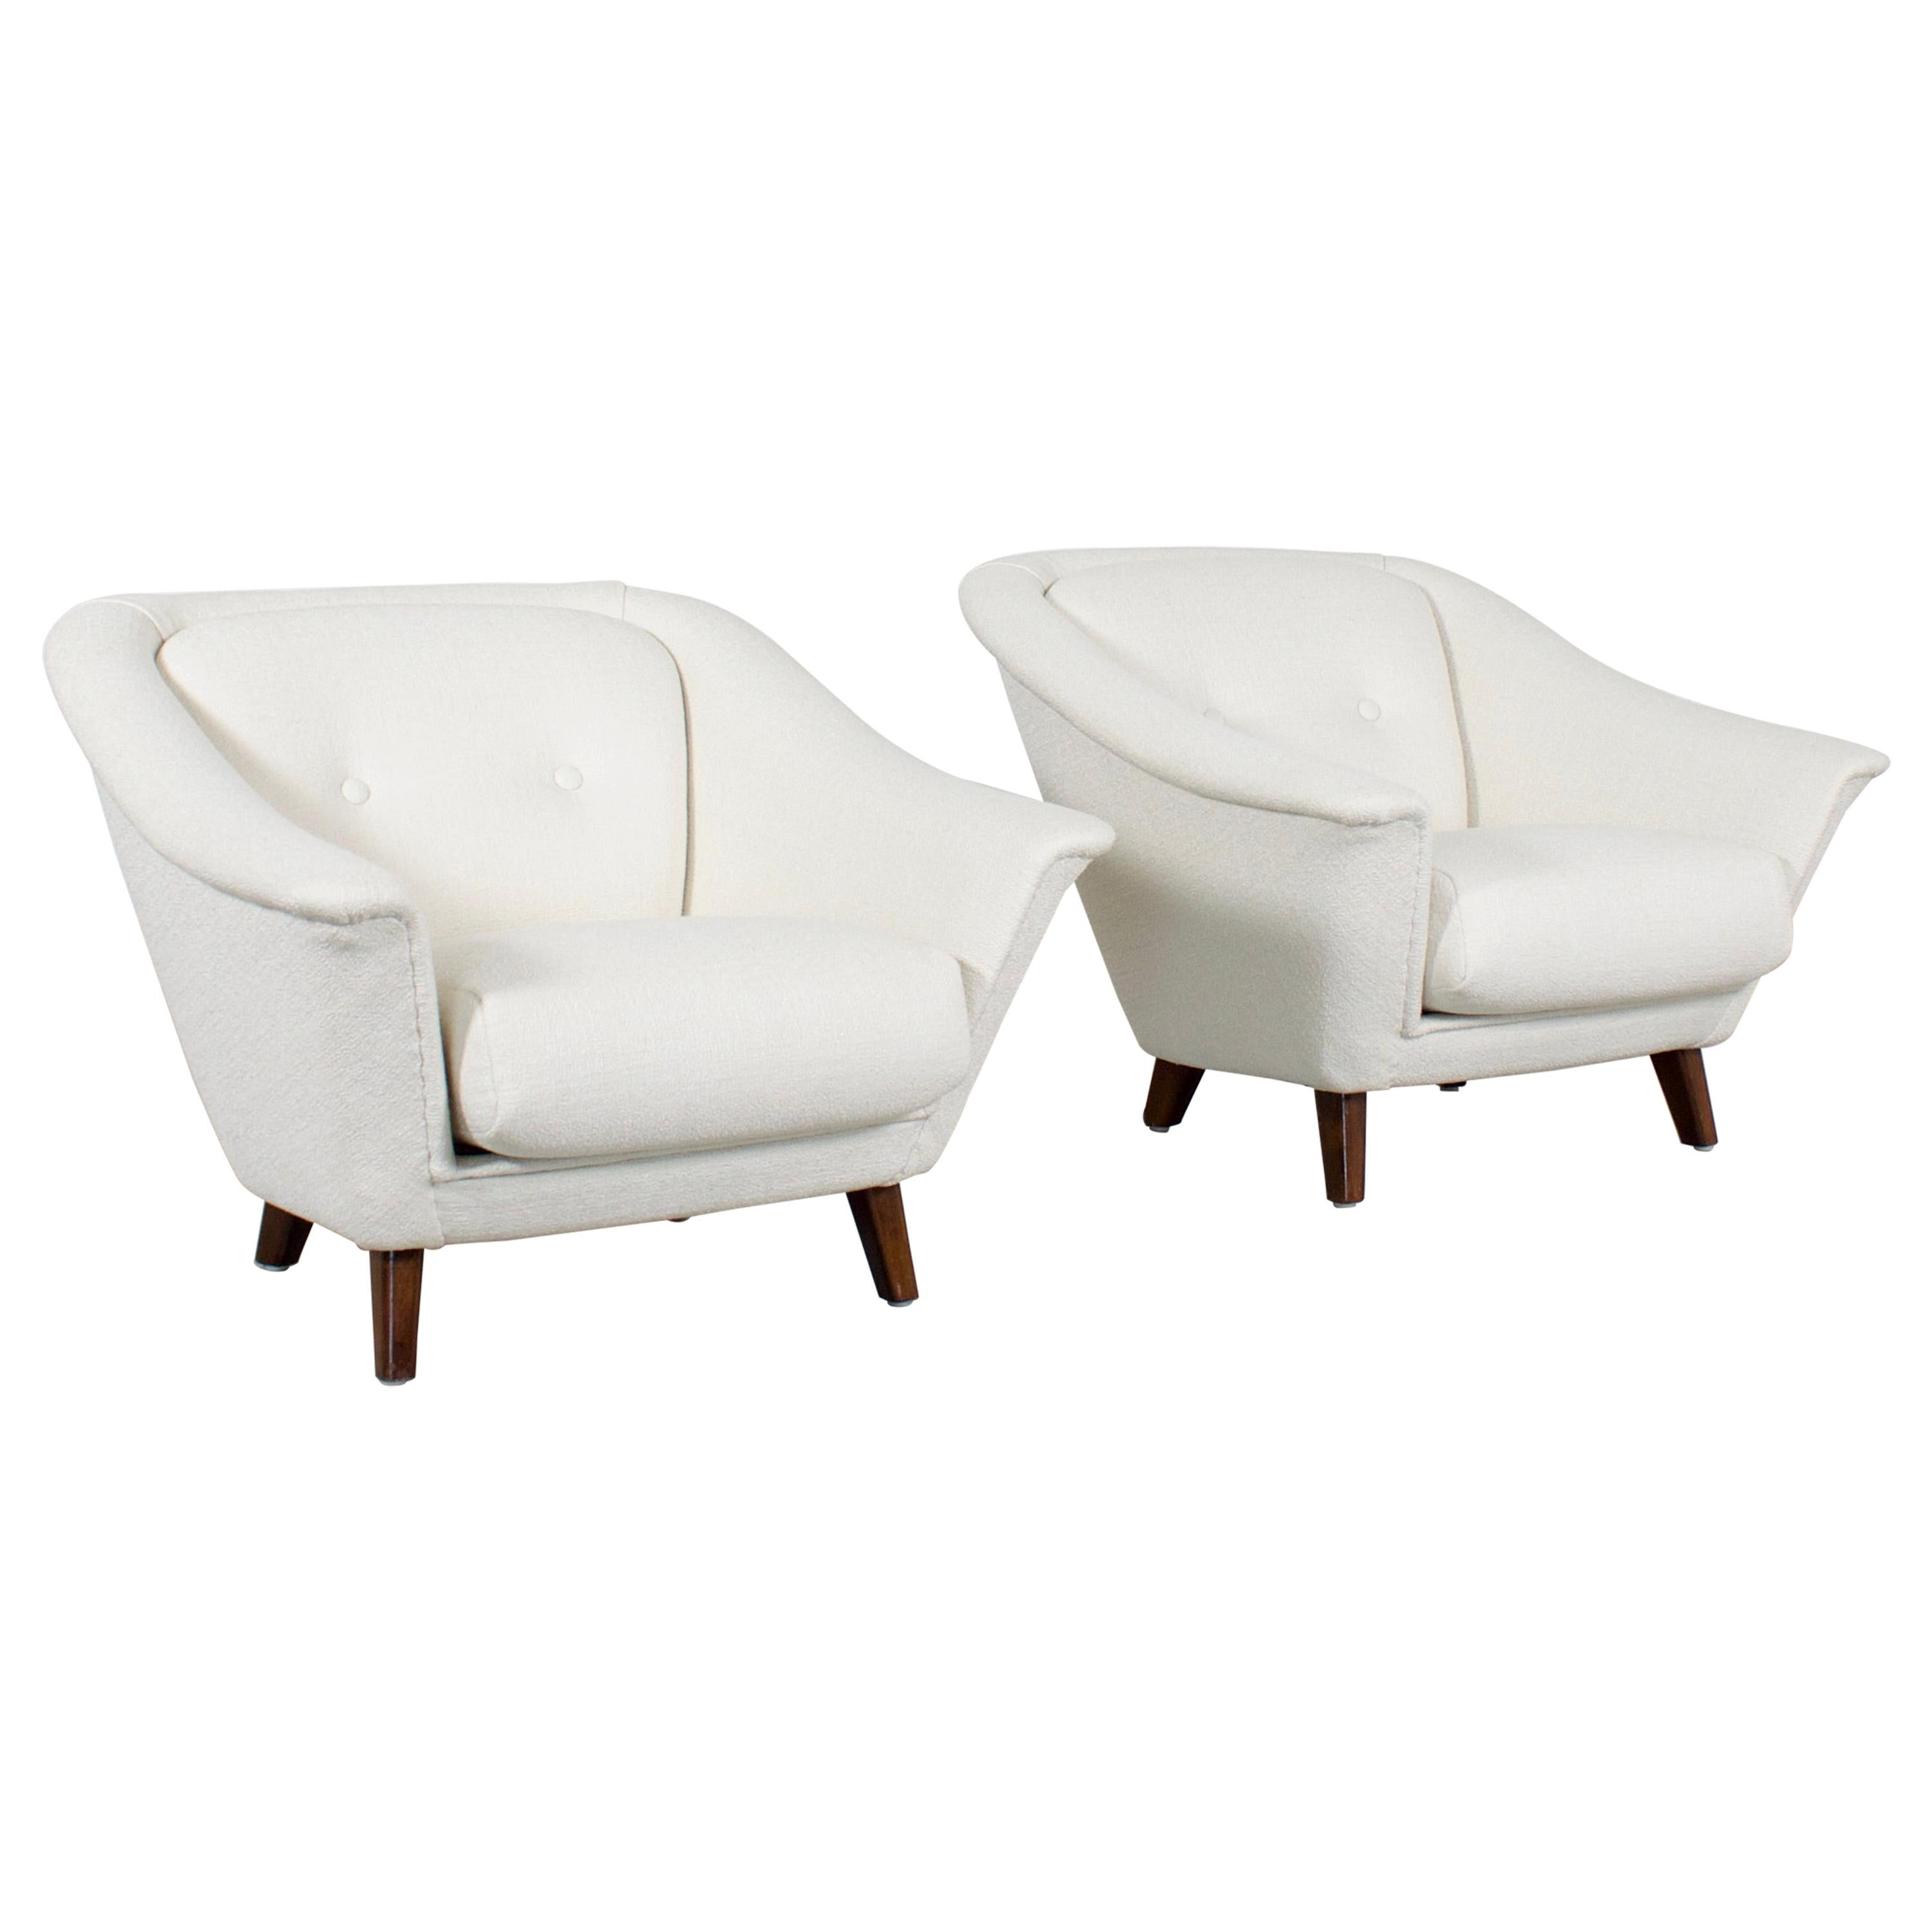 Beautiful Set of Boucle Armchairs, 1960s